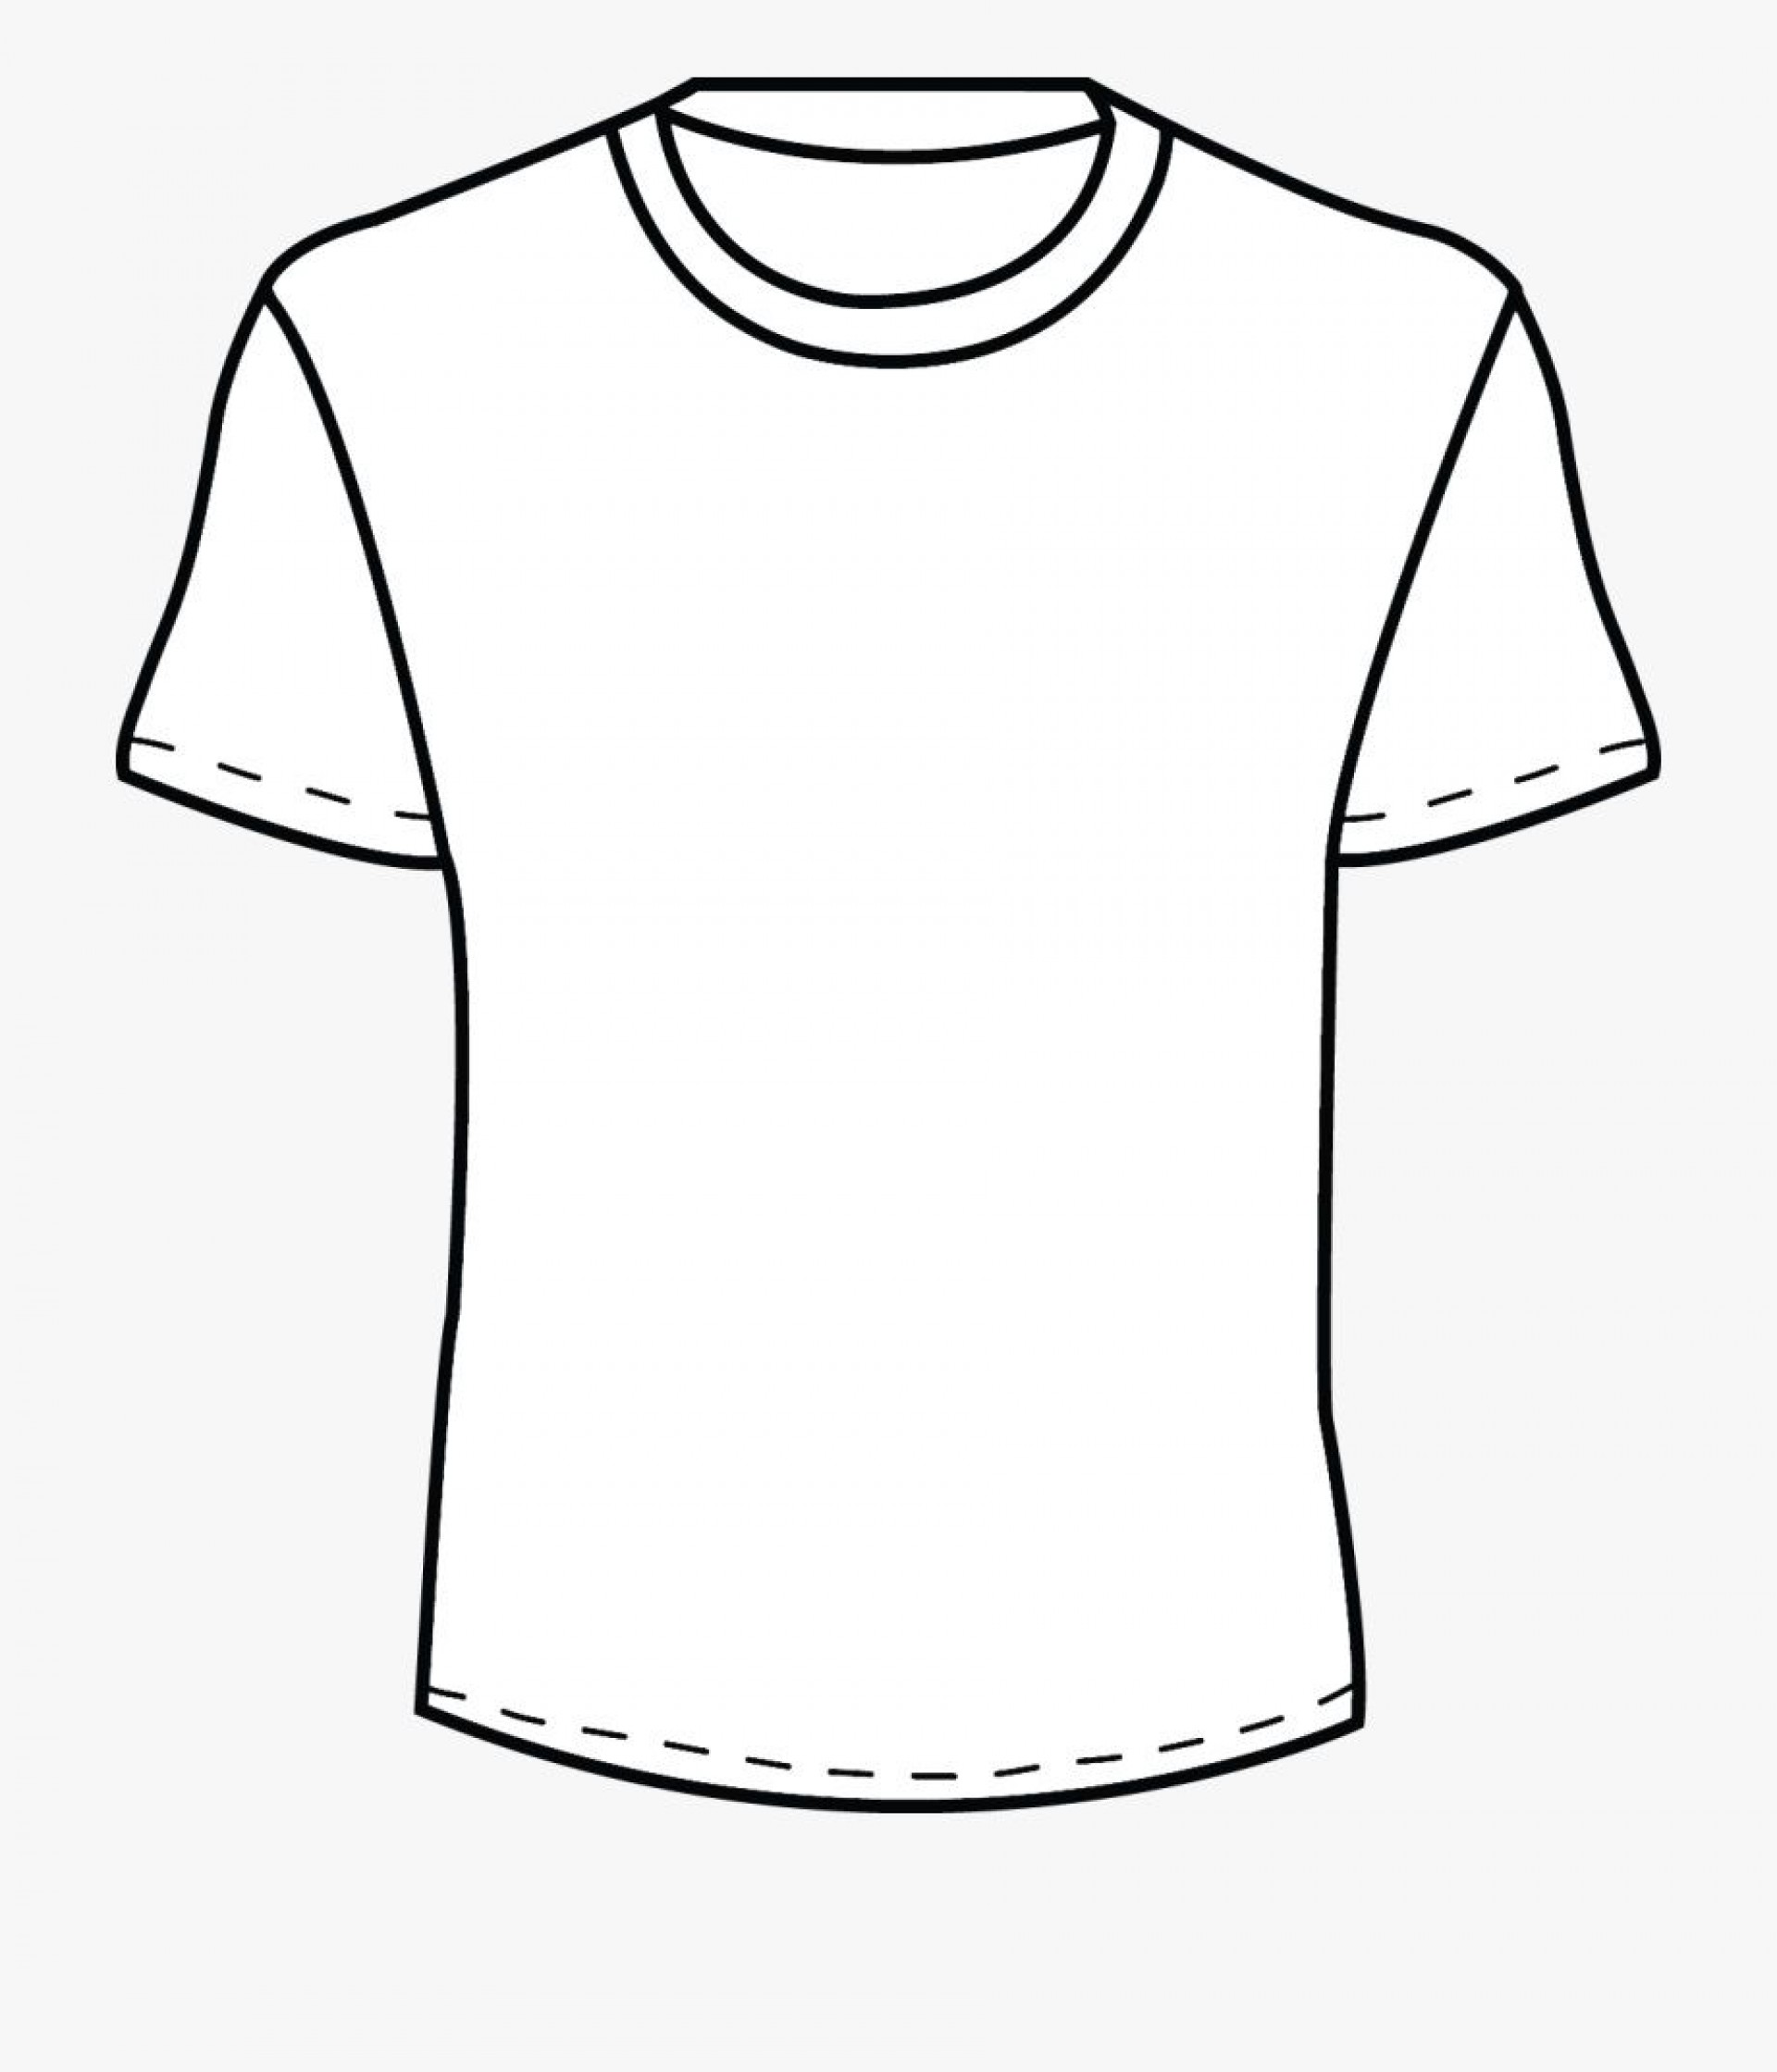 002 Beautiful Plain T Shirt Template Concept  Blank Front And Back1920